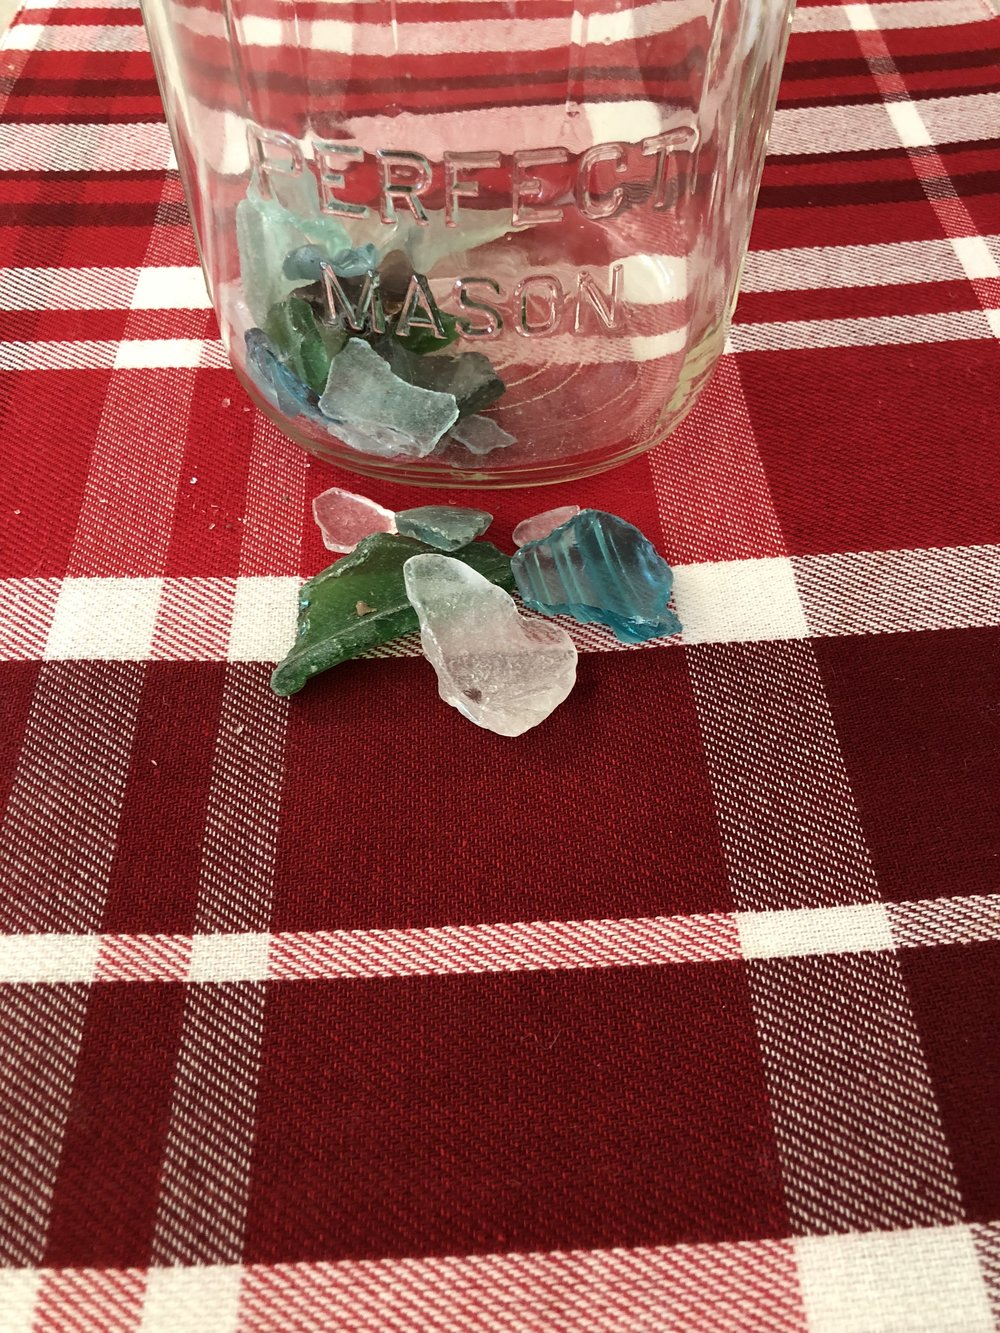 Sea Glass in New York Finger Lakes, Oneida Lake, Otisco Lake.